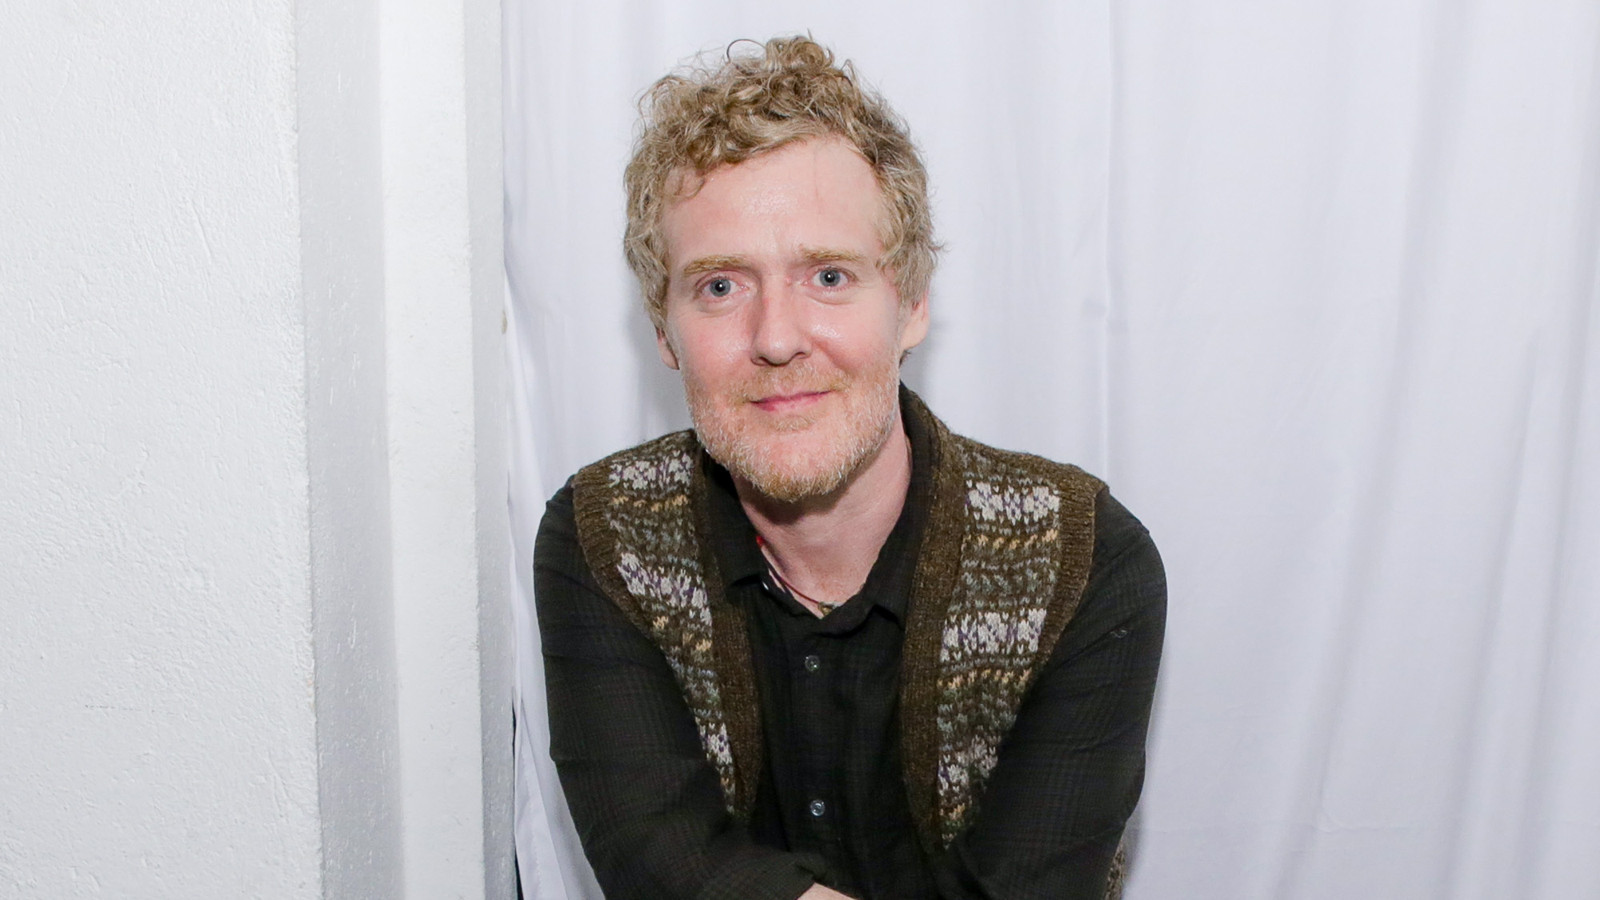 glen hansard ticketsglen hansard tour, glen hansard winning streak, glen hansard falling slowly, glen hansard chicago, glen hansard new album, glen hansard once, glen hansard youtube, glen hansard seattle, glen hansard lyrics, glen hansard portland, glen hansard denver, glen hansard setlist, glen hansard guitar, glen hansard los angeles, glen hansard tickets, glen hansard madison, glen hansard drive all night, glen hansard wiki, glen hansard and marketa irglova